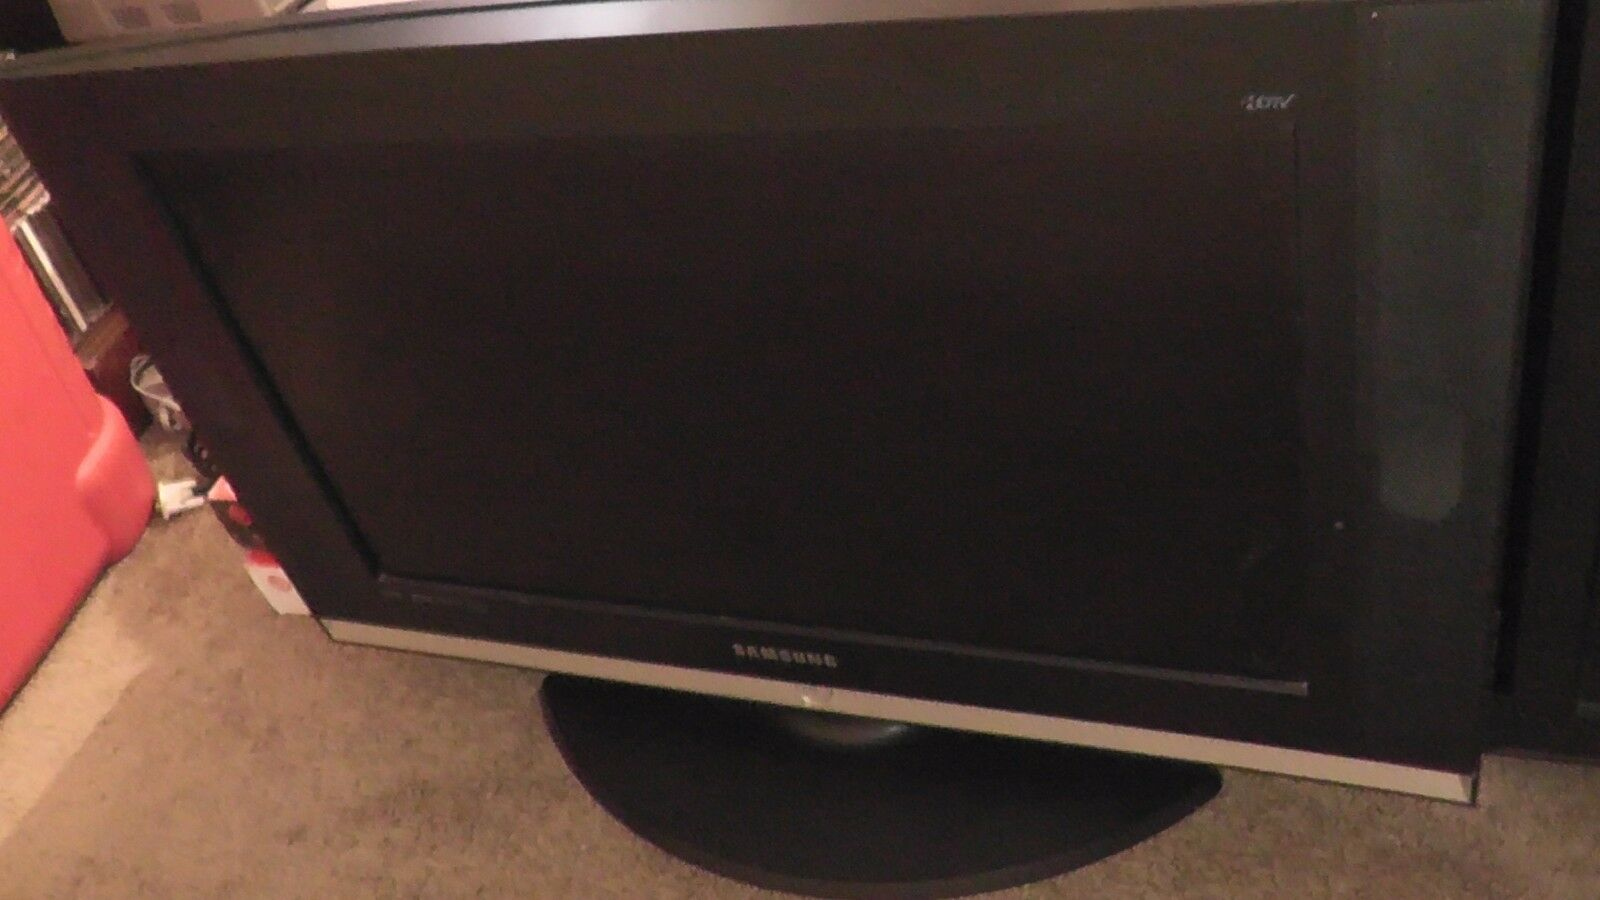 26 Inch TV Untested HDTV Samsung 2006 Computer Monitor LCD Liquid Crystal Displa